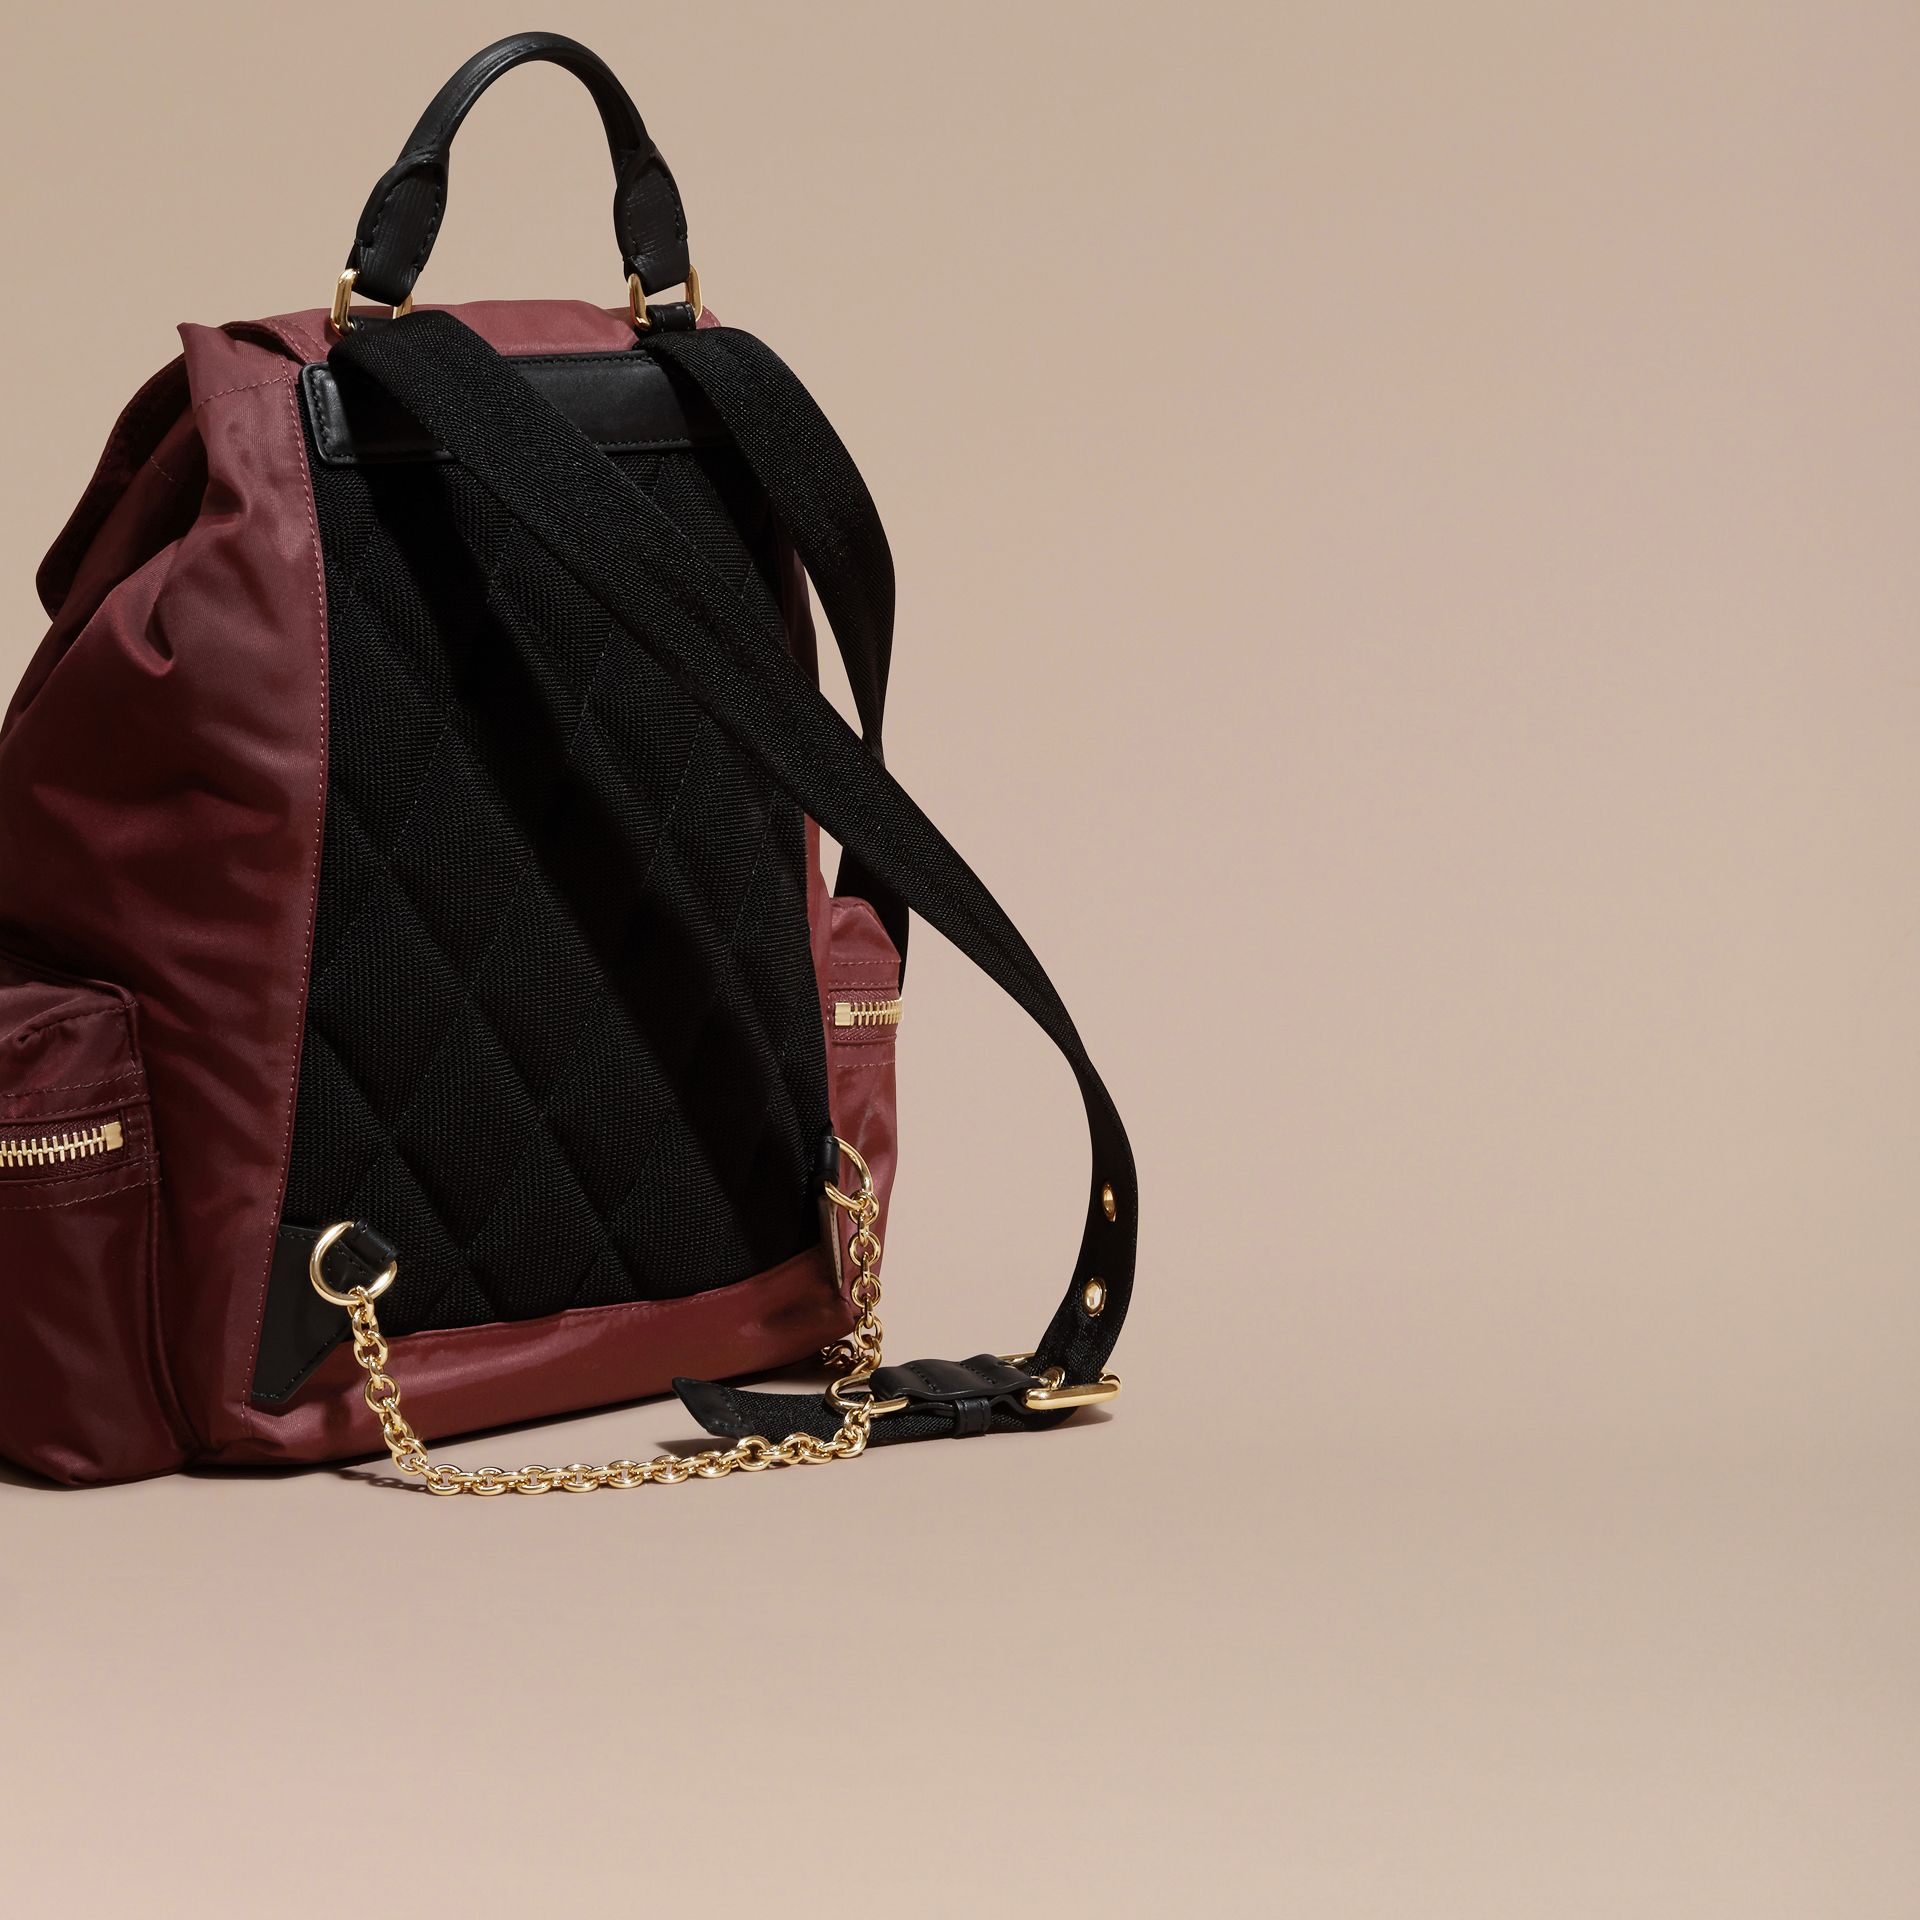 Burgundy red The Medium Rucksack in Technical Nylon and Leather Burgundy Red - gallery image 4